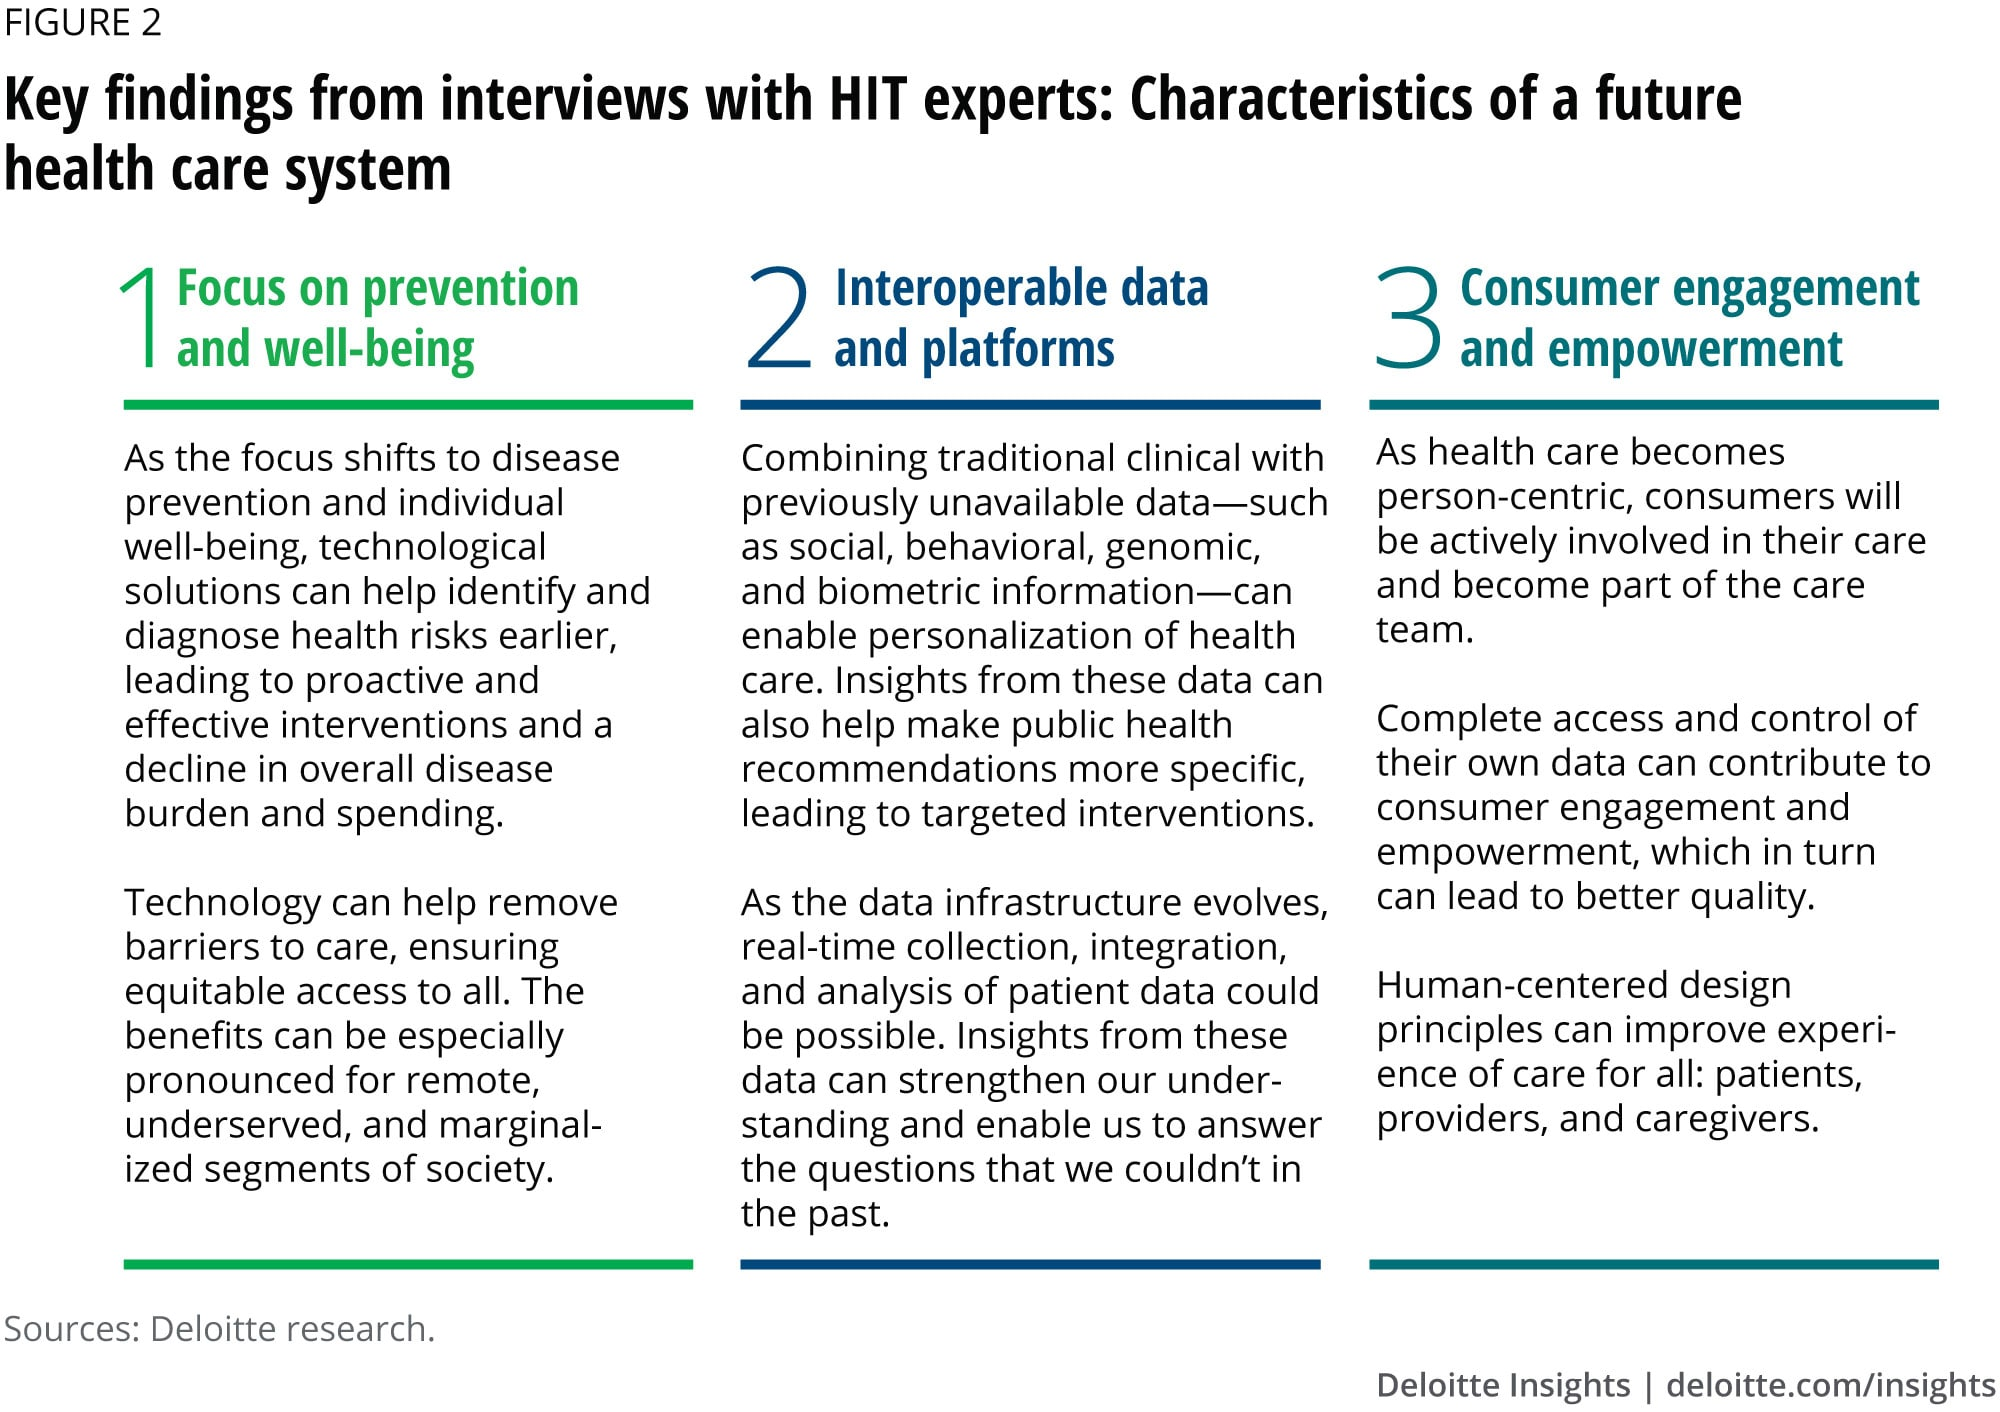 Key findings from interviews with HIT experts: Characteristics of a future health care system